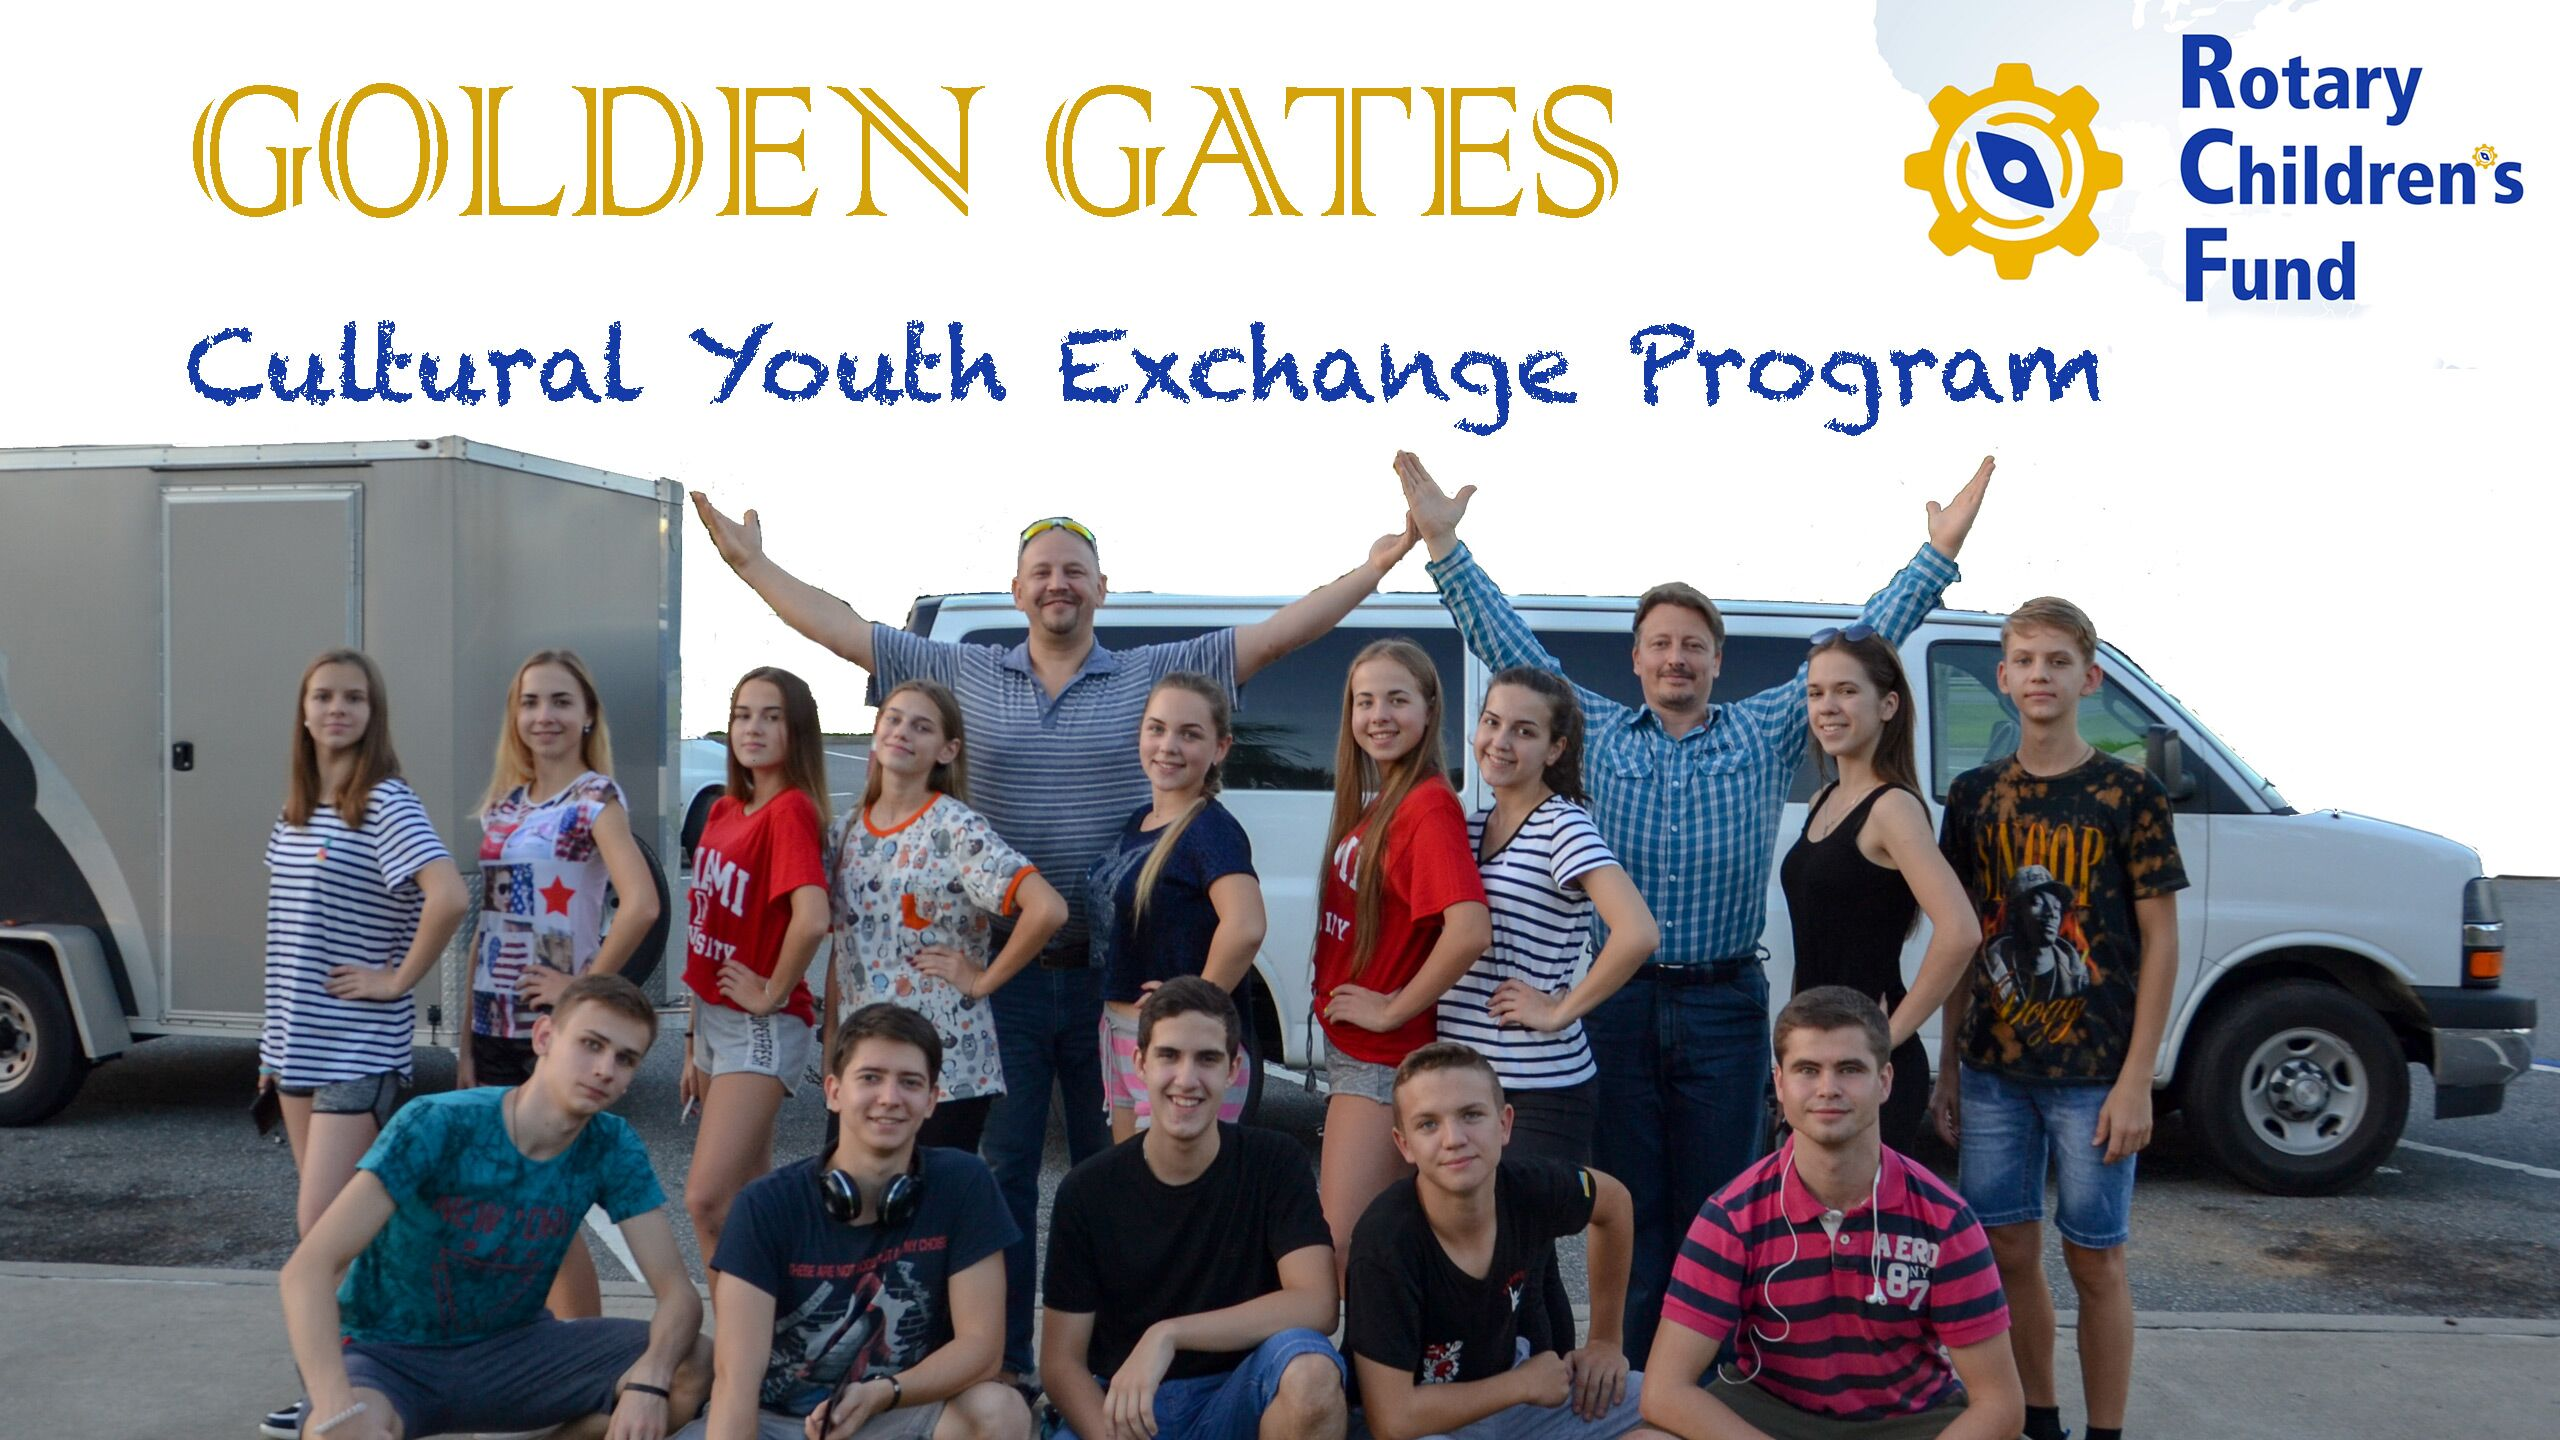 Rotary Children's Fund. Golden Gates cultural youth exchange program